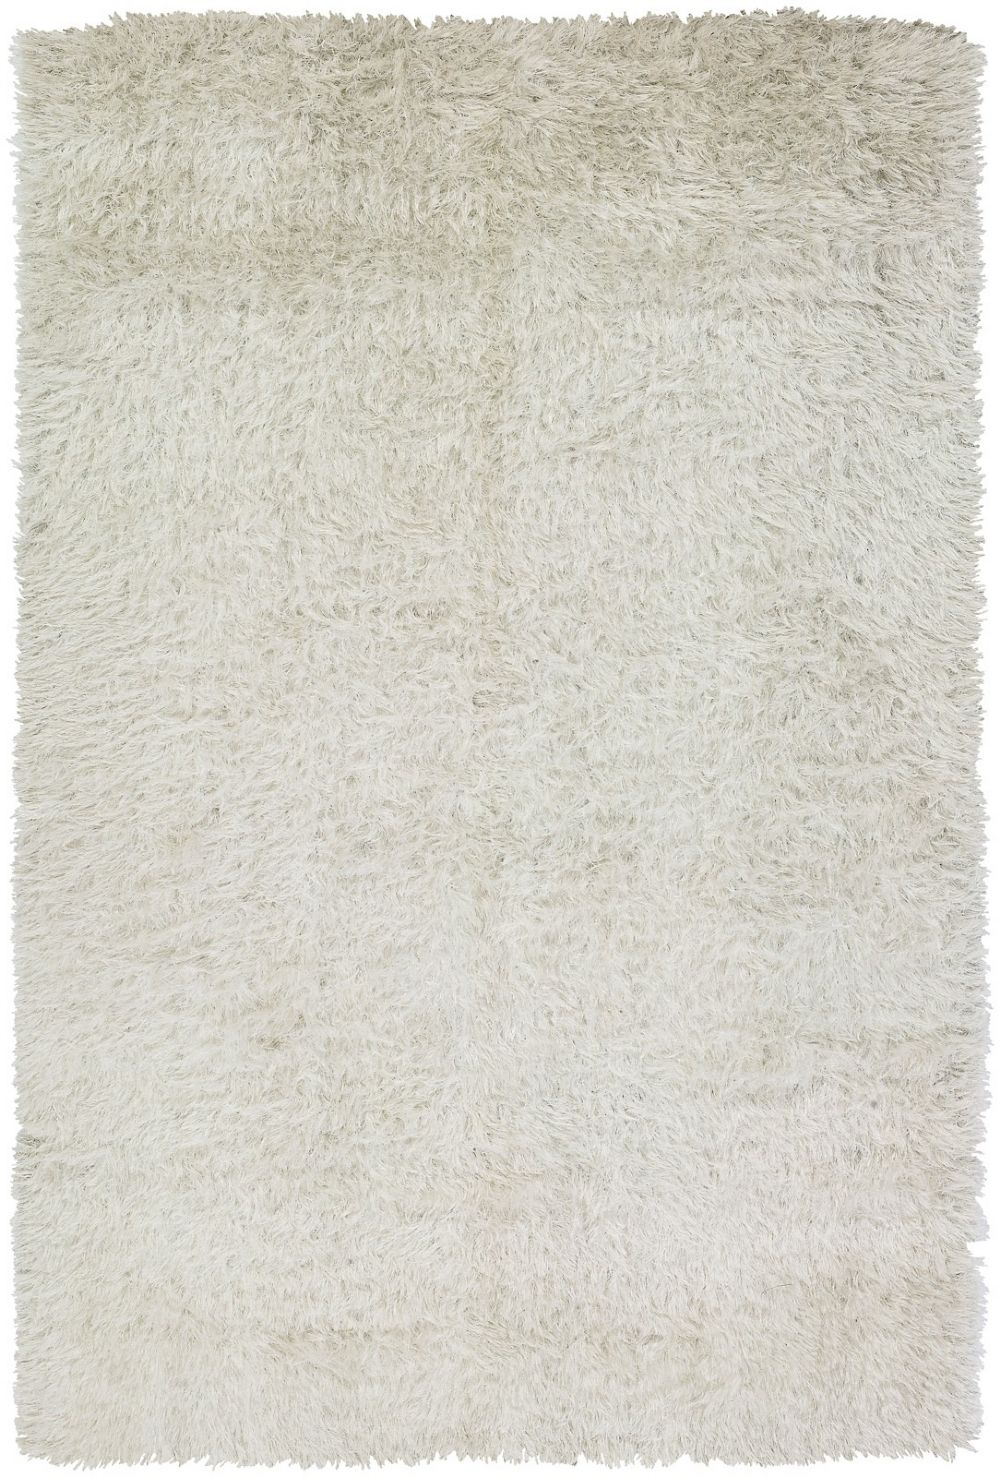 chandra oyster contemporary area rug collection